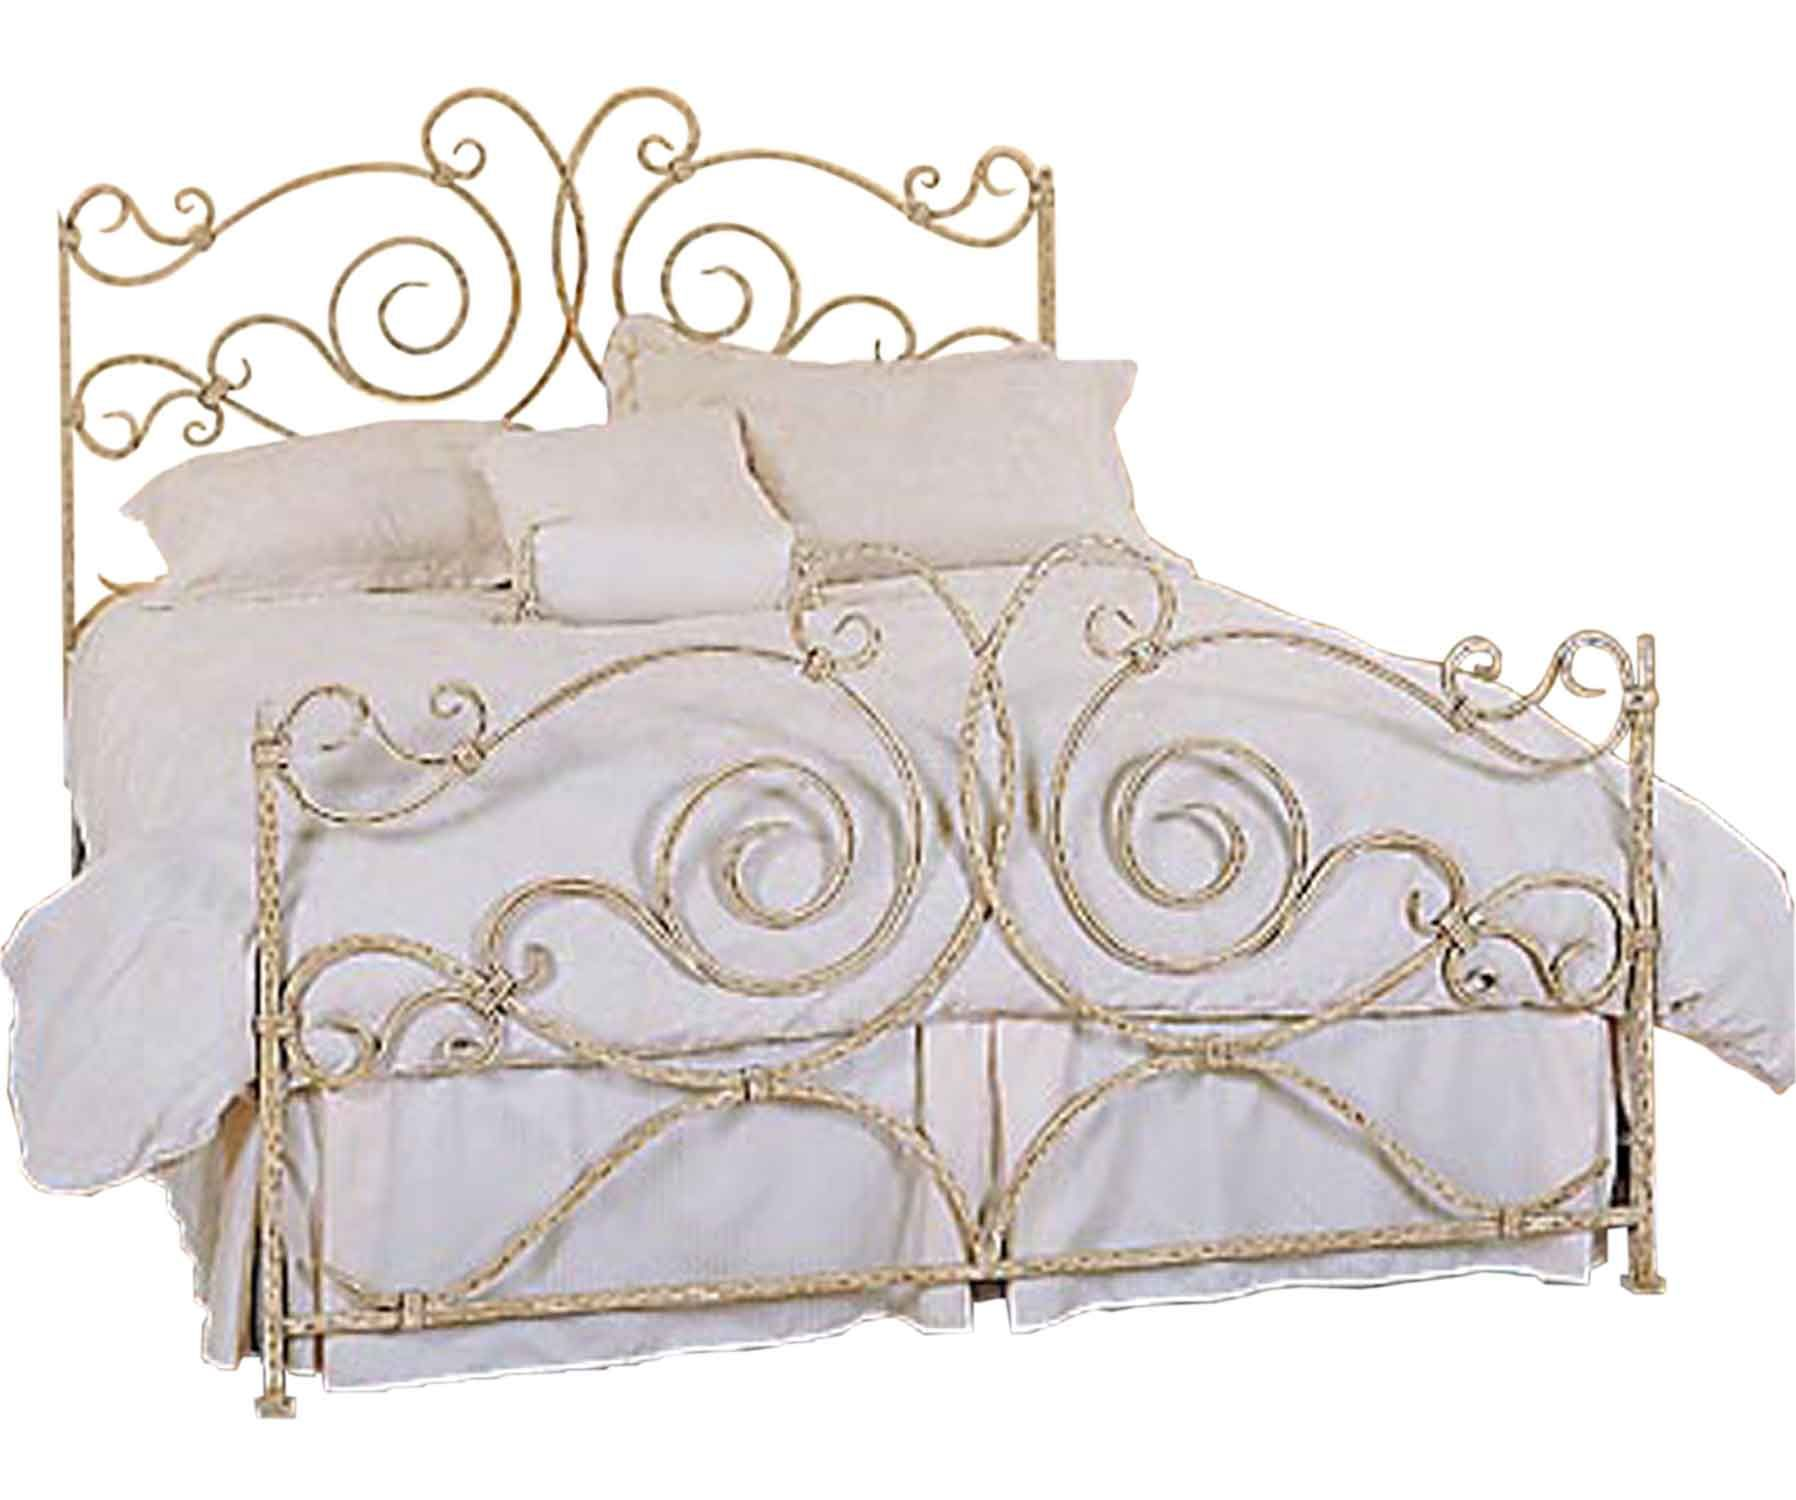 Vintage Wrought Iron Full Size Bed Frame With Gorgeous Ornate Foot And Headboard Iron Canopy Bed Wrought Iron Beds Iron Bed